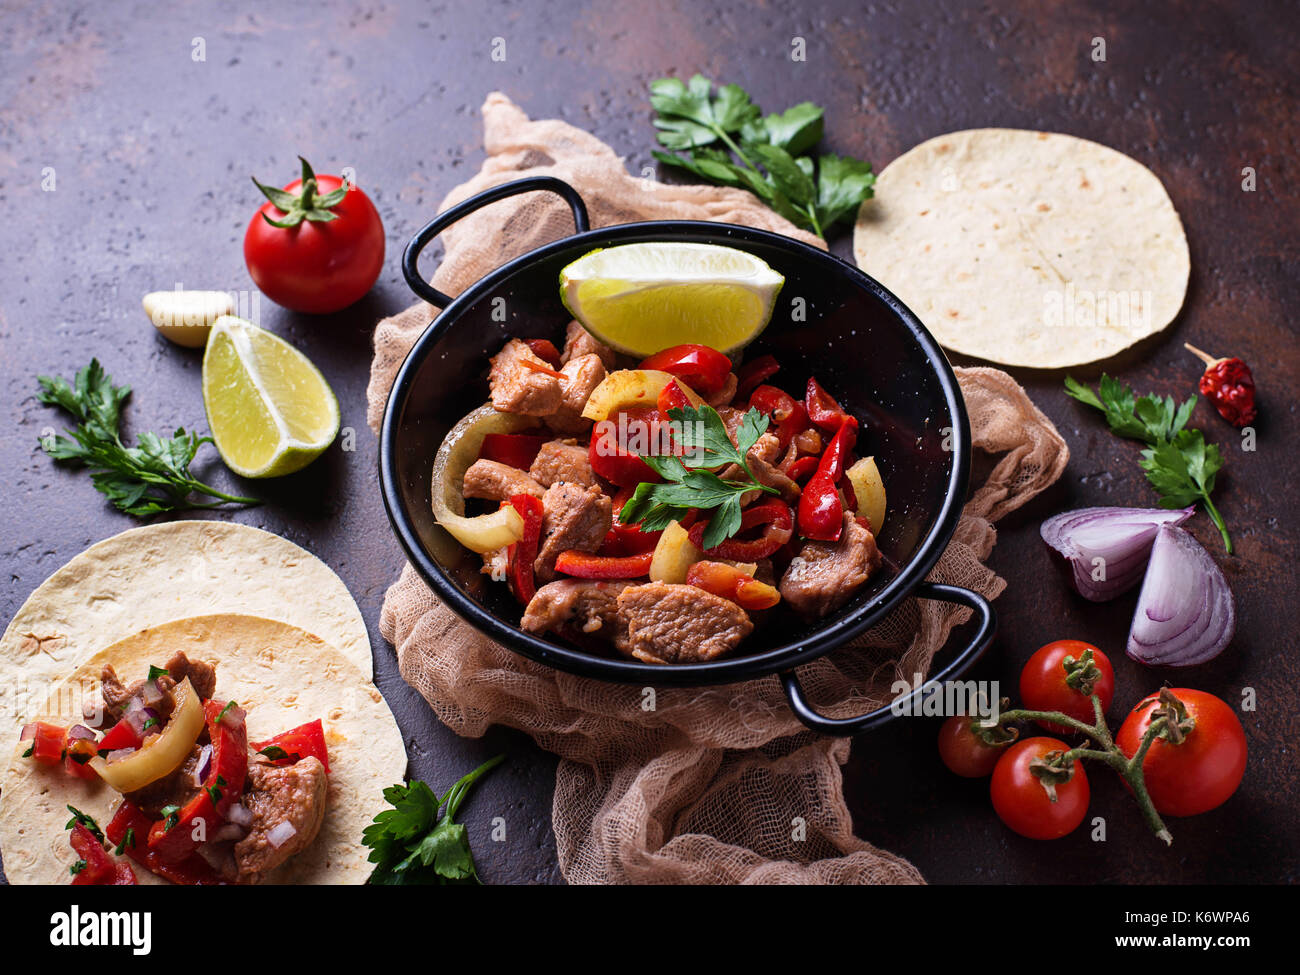 Fajitas with peppers for cooking Mexican tacos - Stock Image